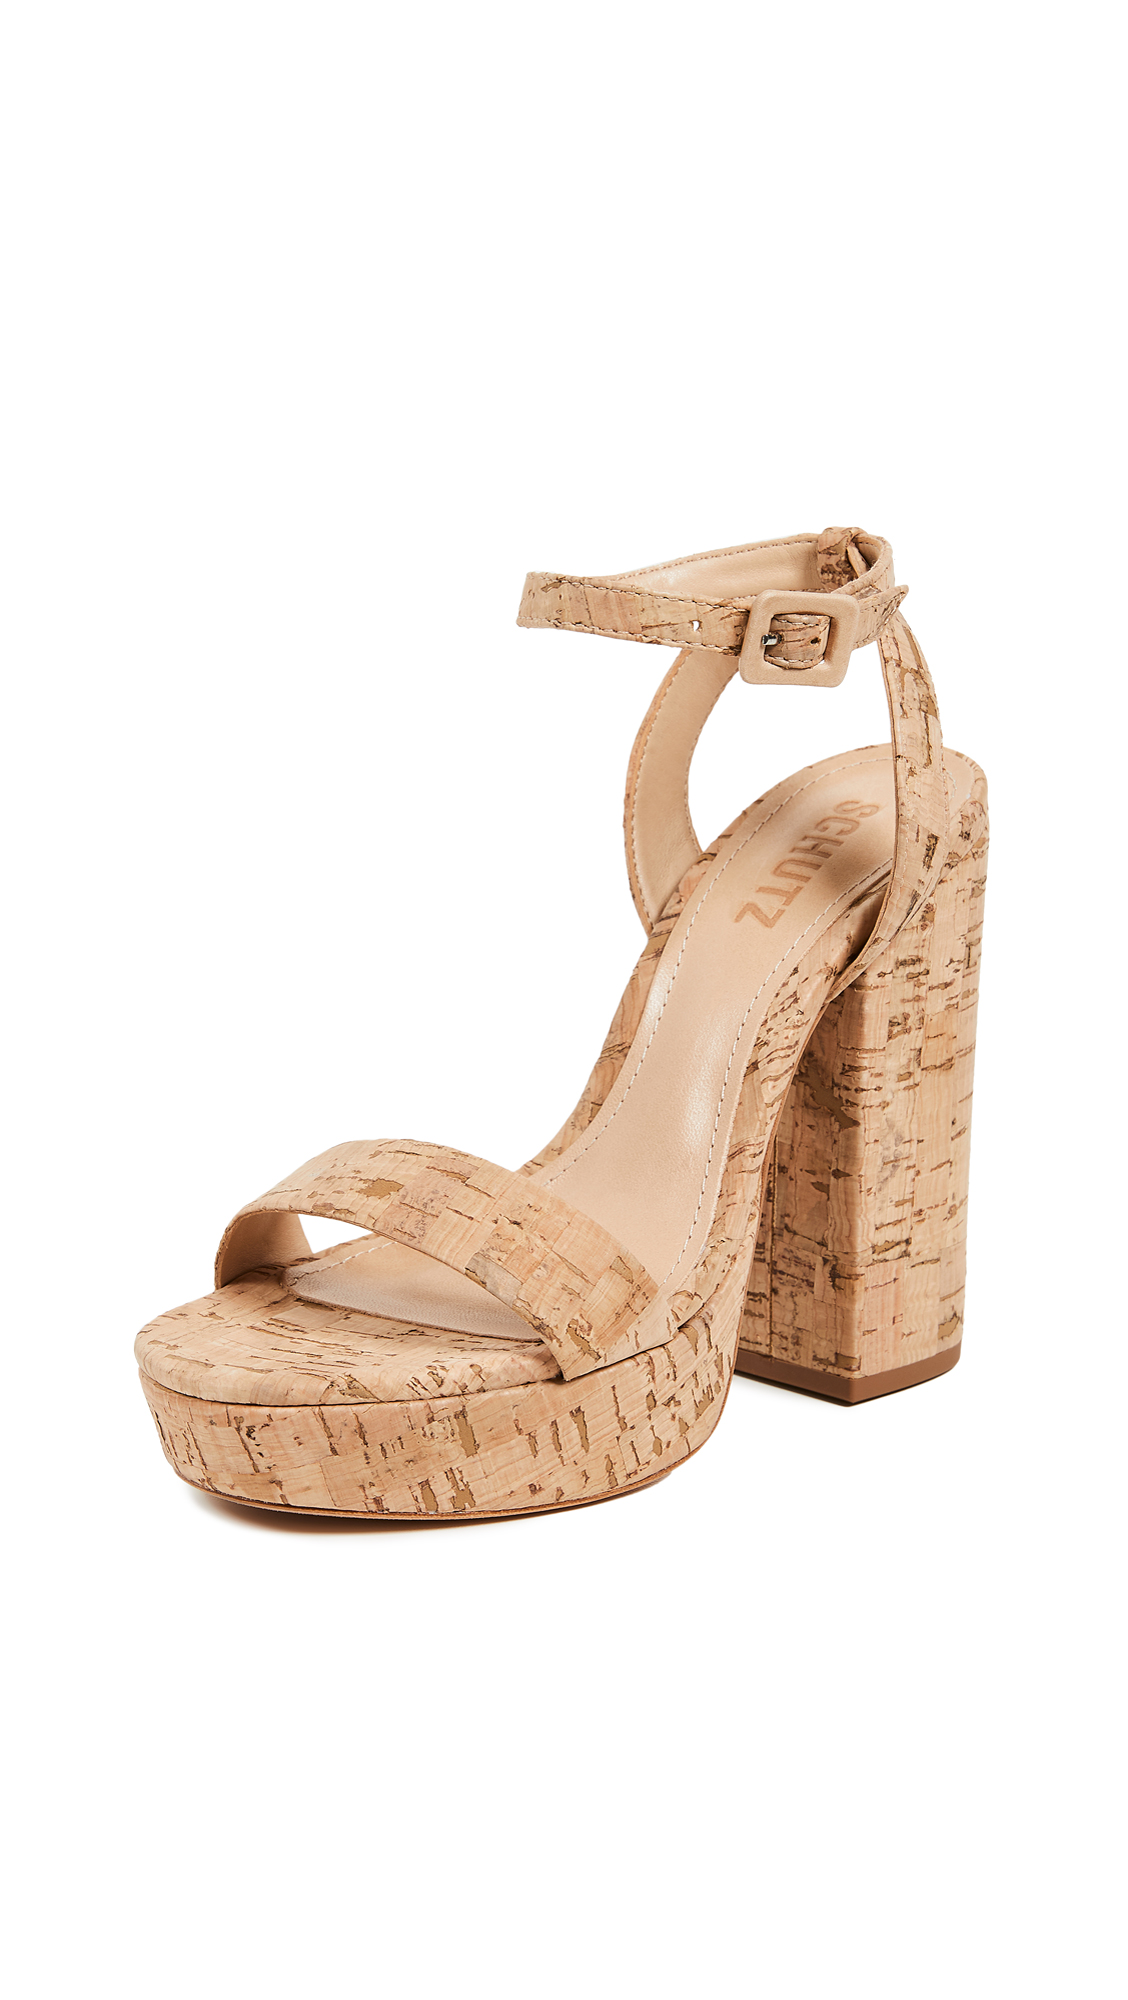 Schutz Martine Platform Sandals - Natural